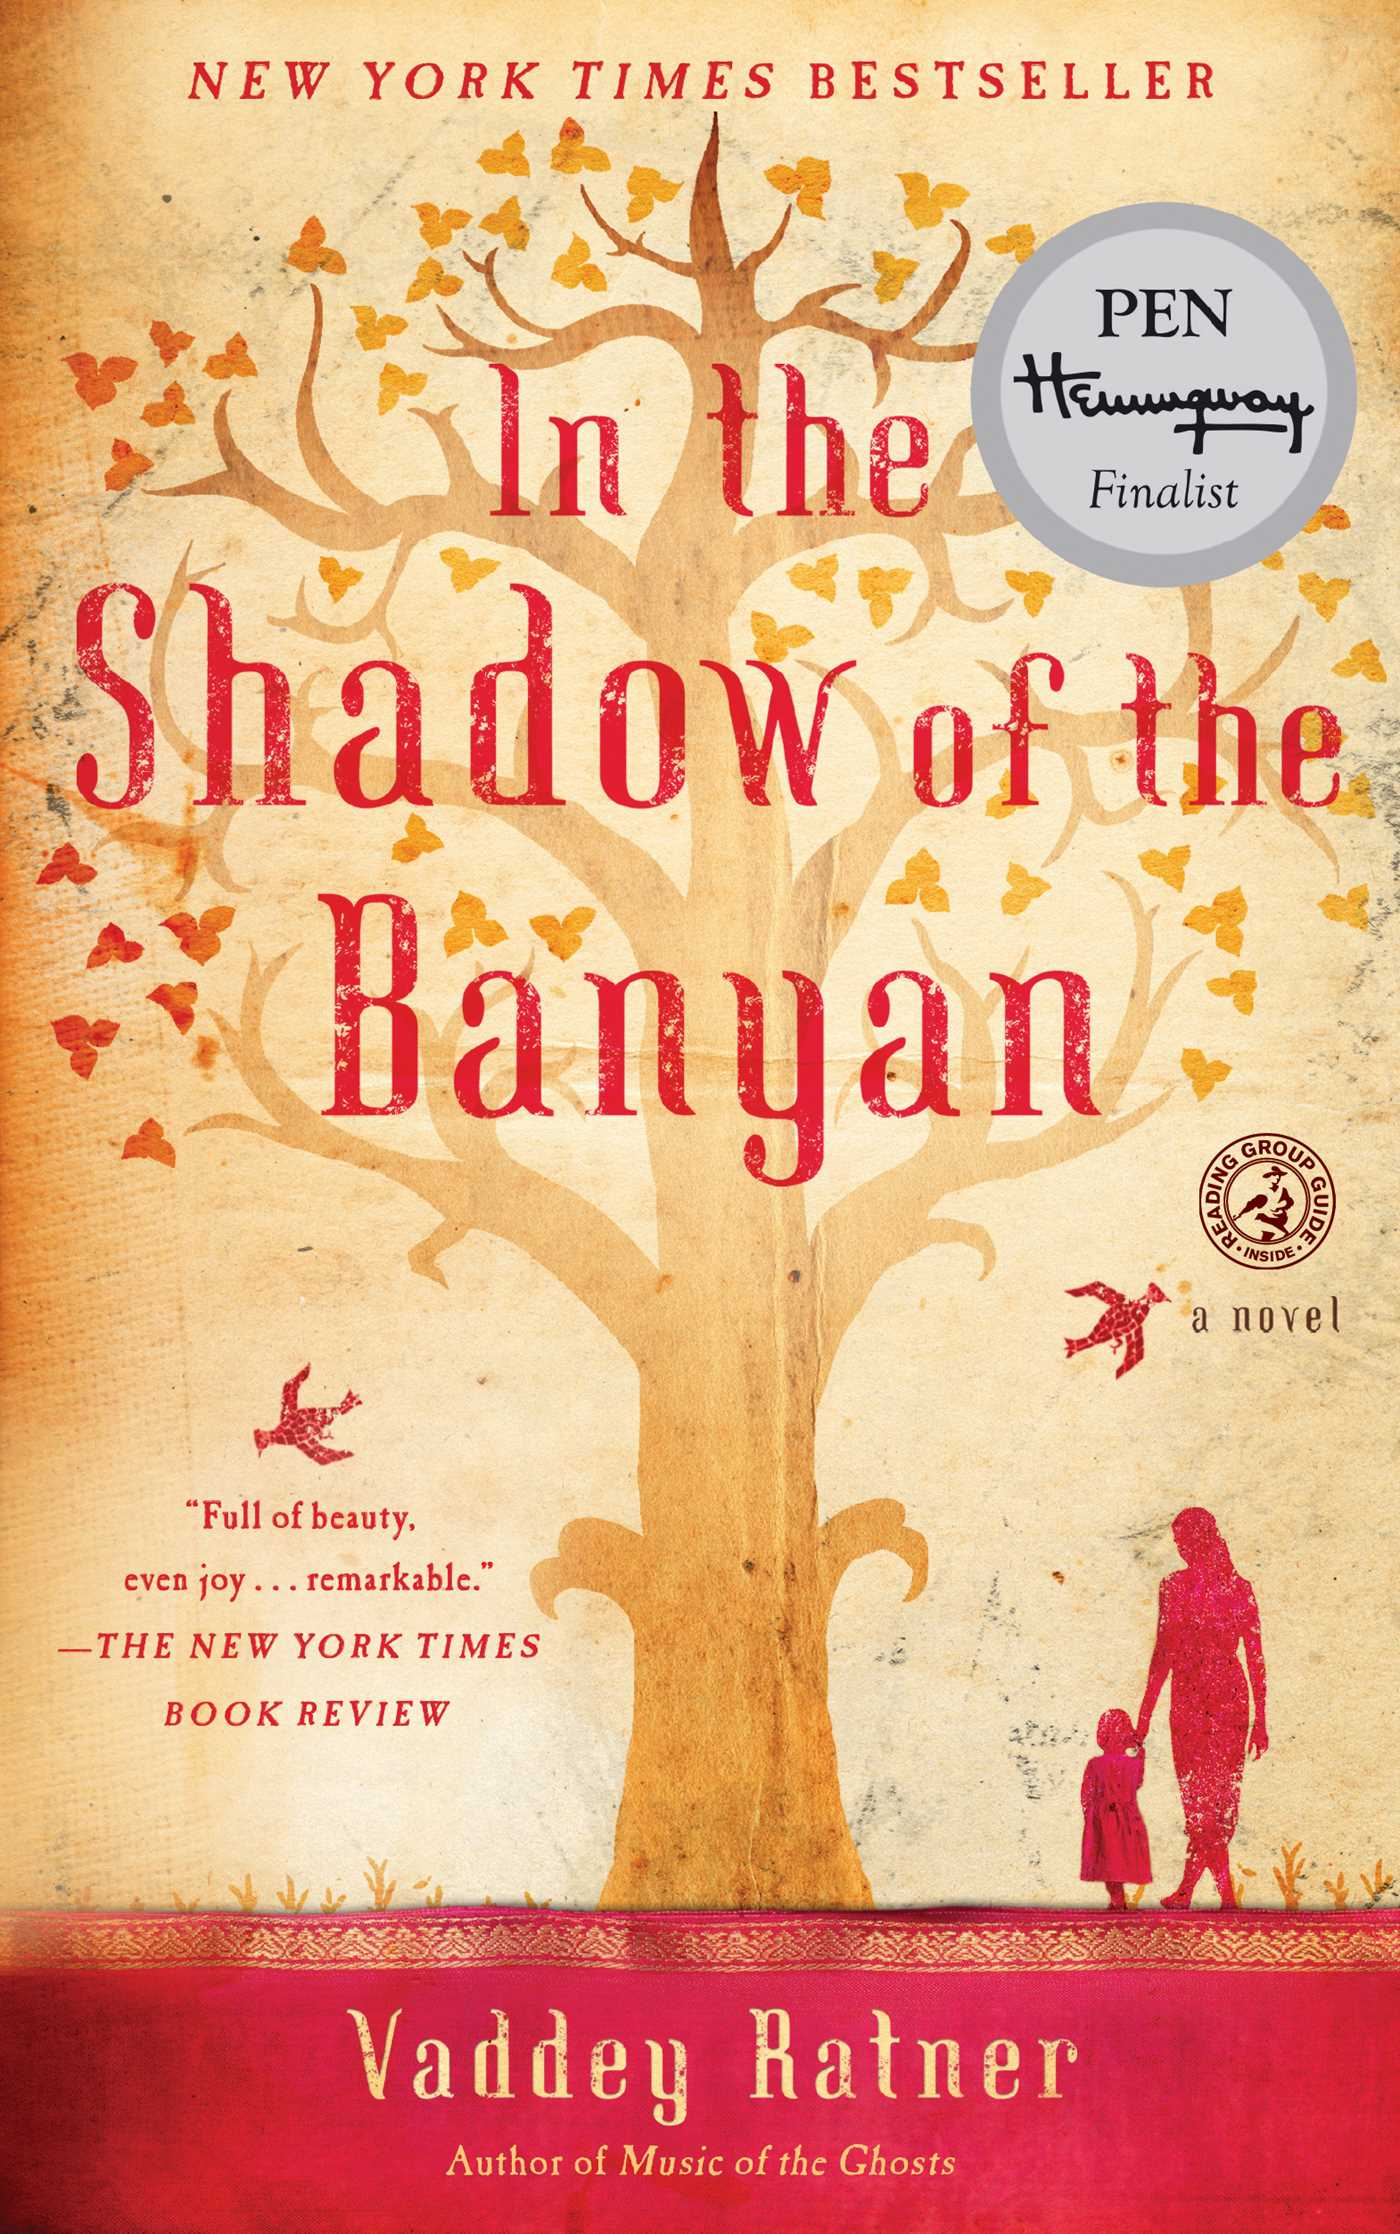 Book Cover Image (jpg): In the Shadow of the Banyan